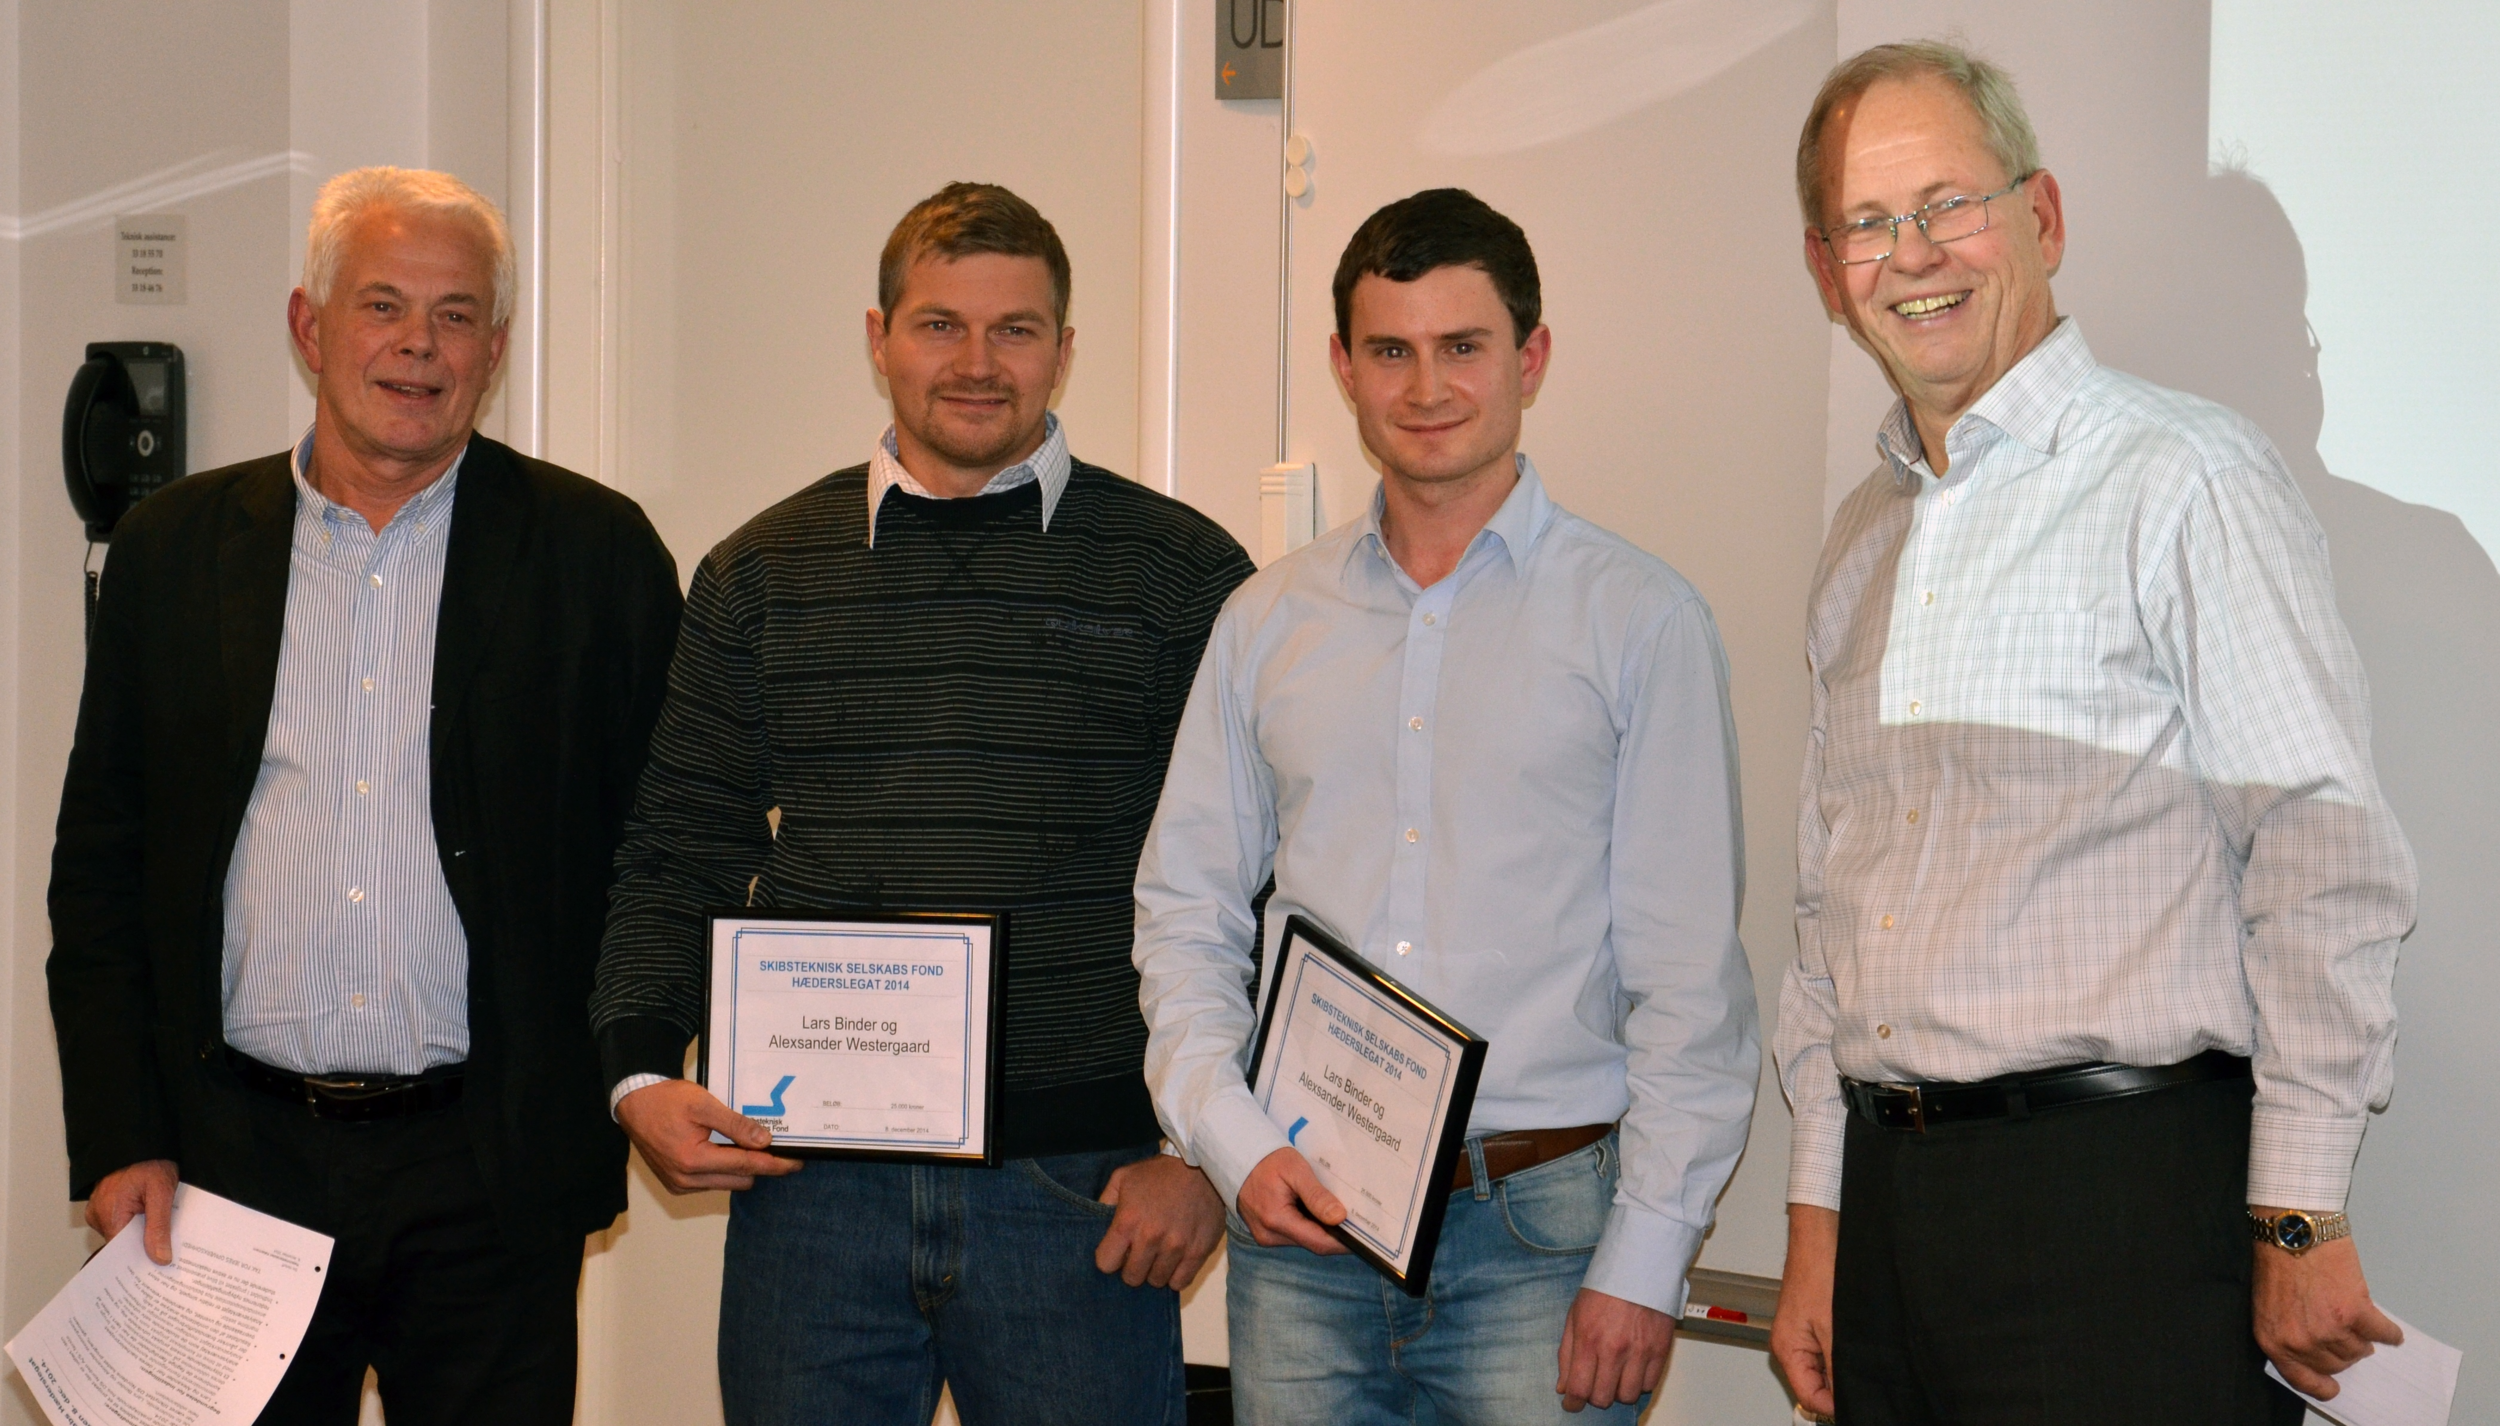 From the left: the recipients Alexsander Westergaard, Lars Binder, Chairman of the board Claus Kruse and Ole Harloff, principal at Københavns Maskinmesterskole